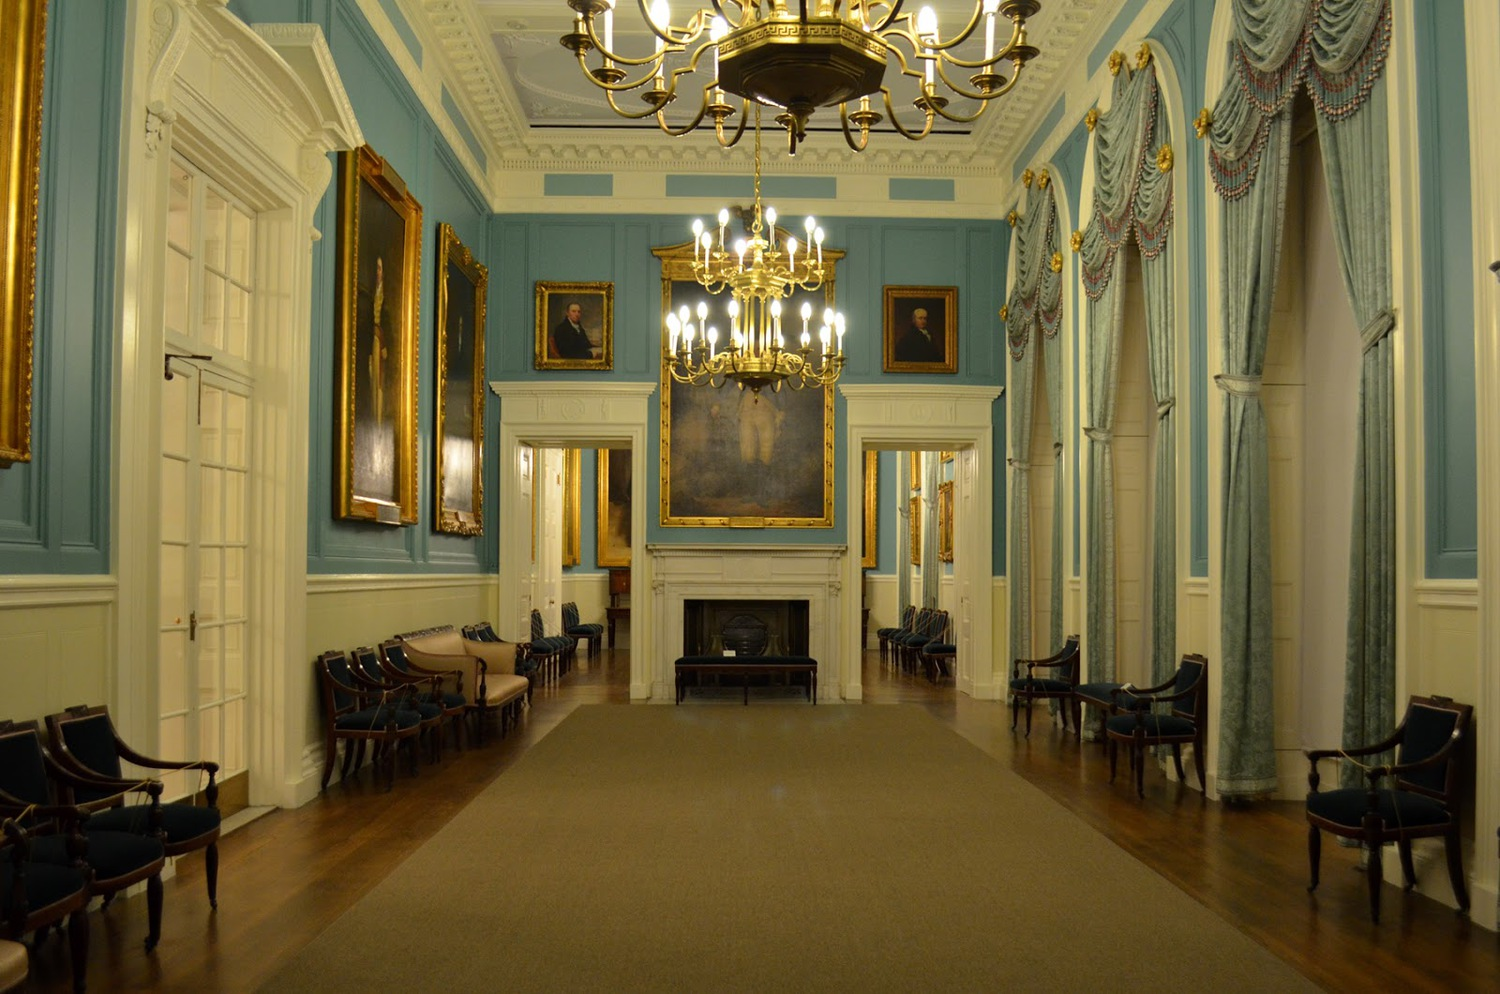 Most rooms within the Hall are not locked, except for one, the Governor's Room, which is normally opened only for tours, or special guests.